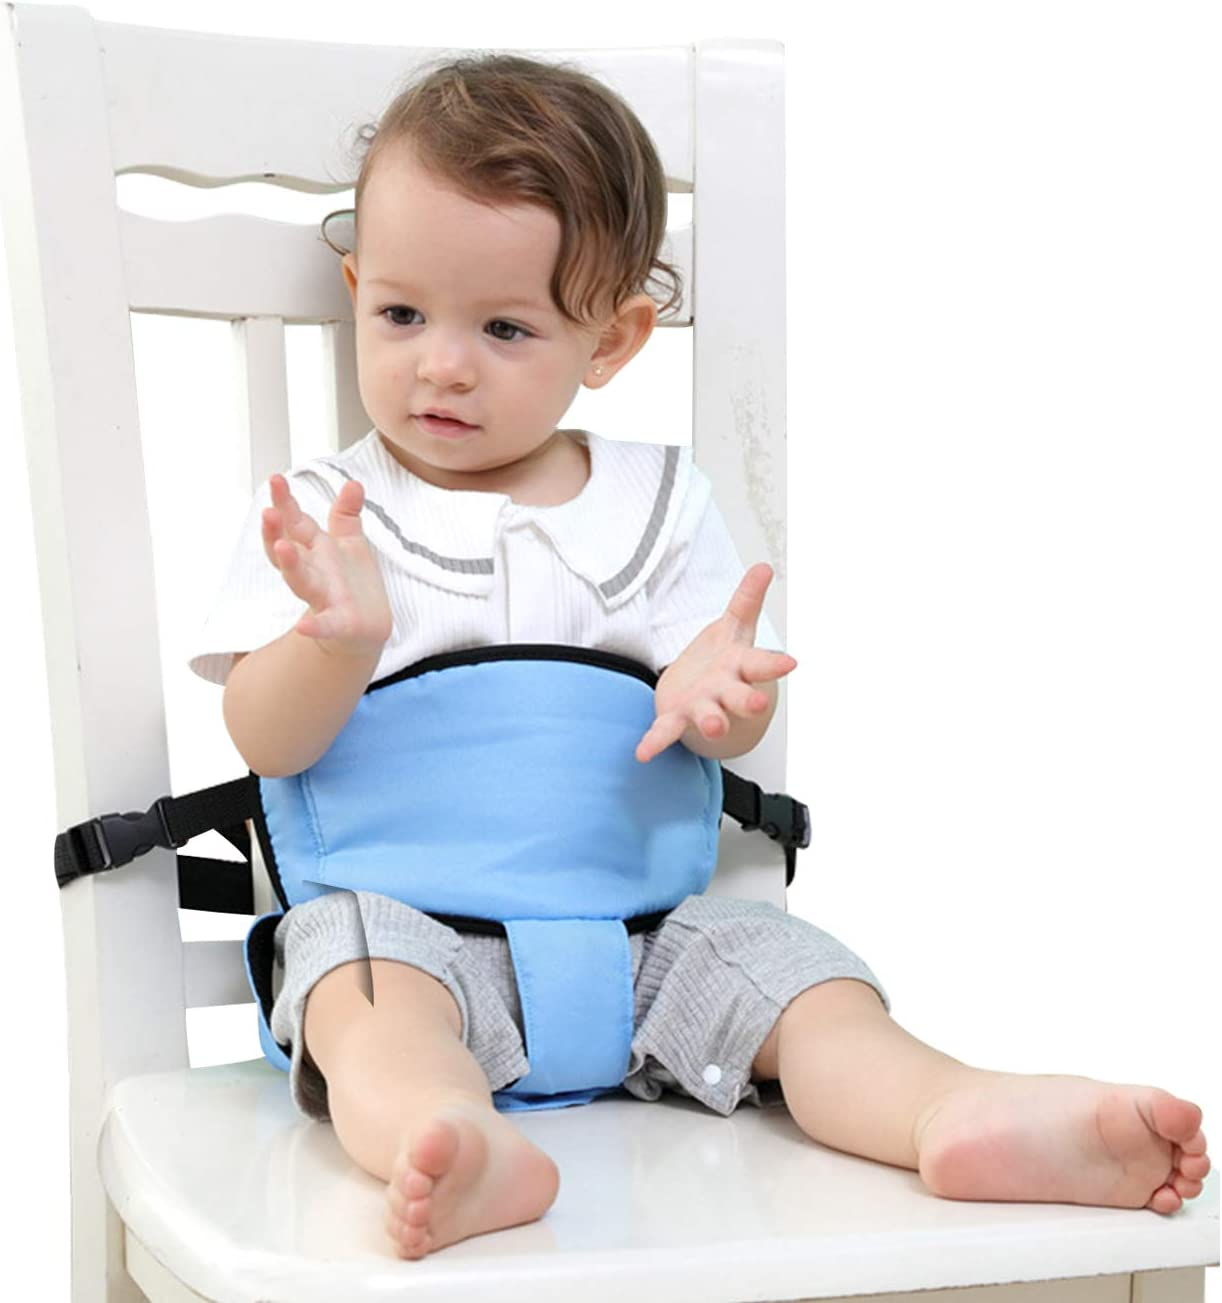 HIFOT Baby Easy Seat Portable High Chair Safety Harness